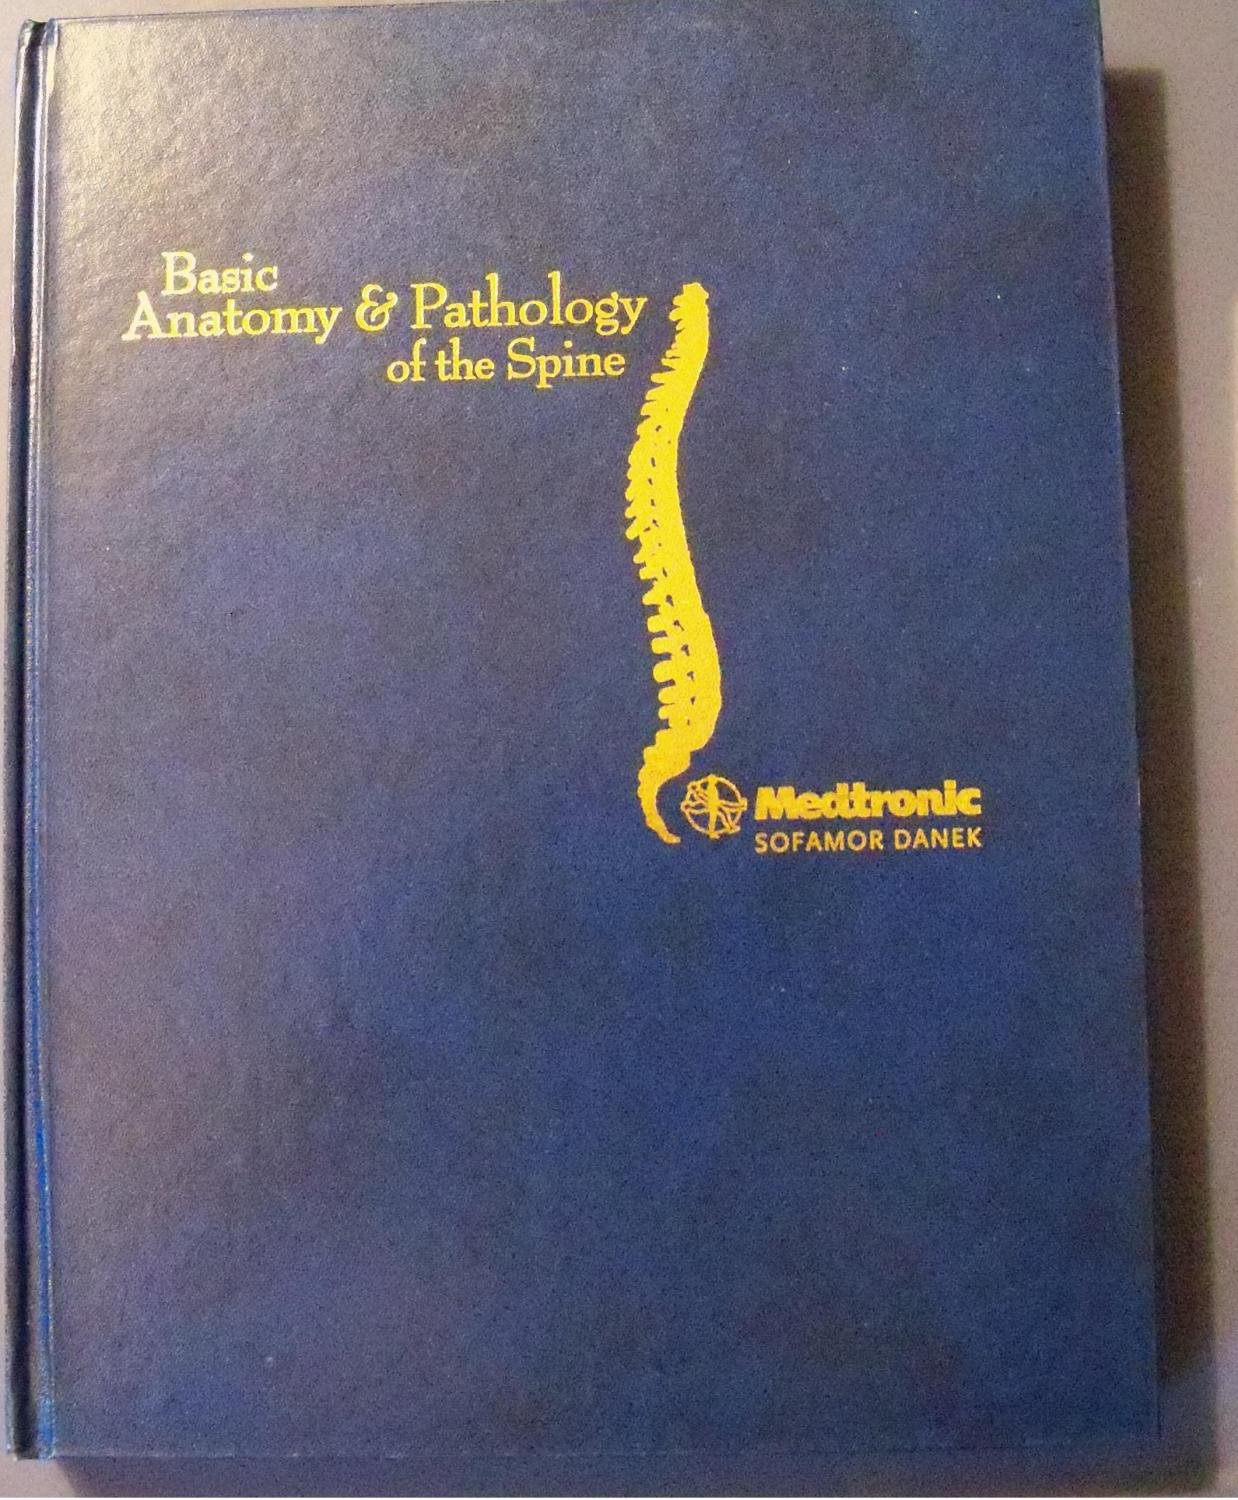 Basic Anatomy Pathology Of The Spine Medtronic Sofamor Danek